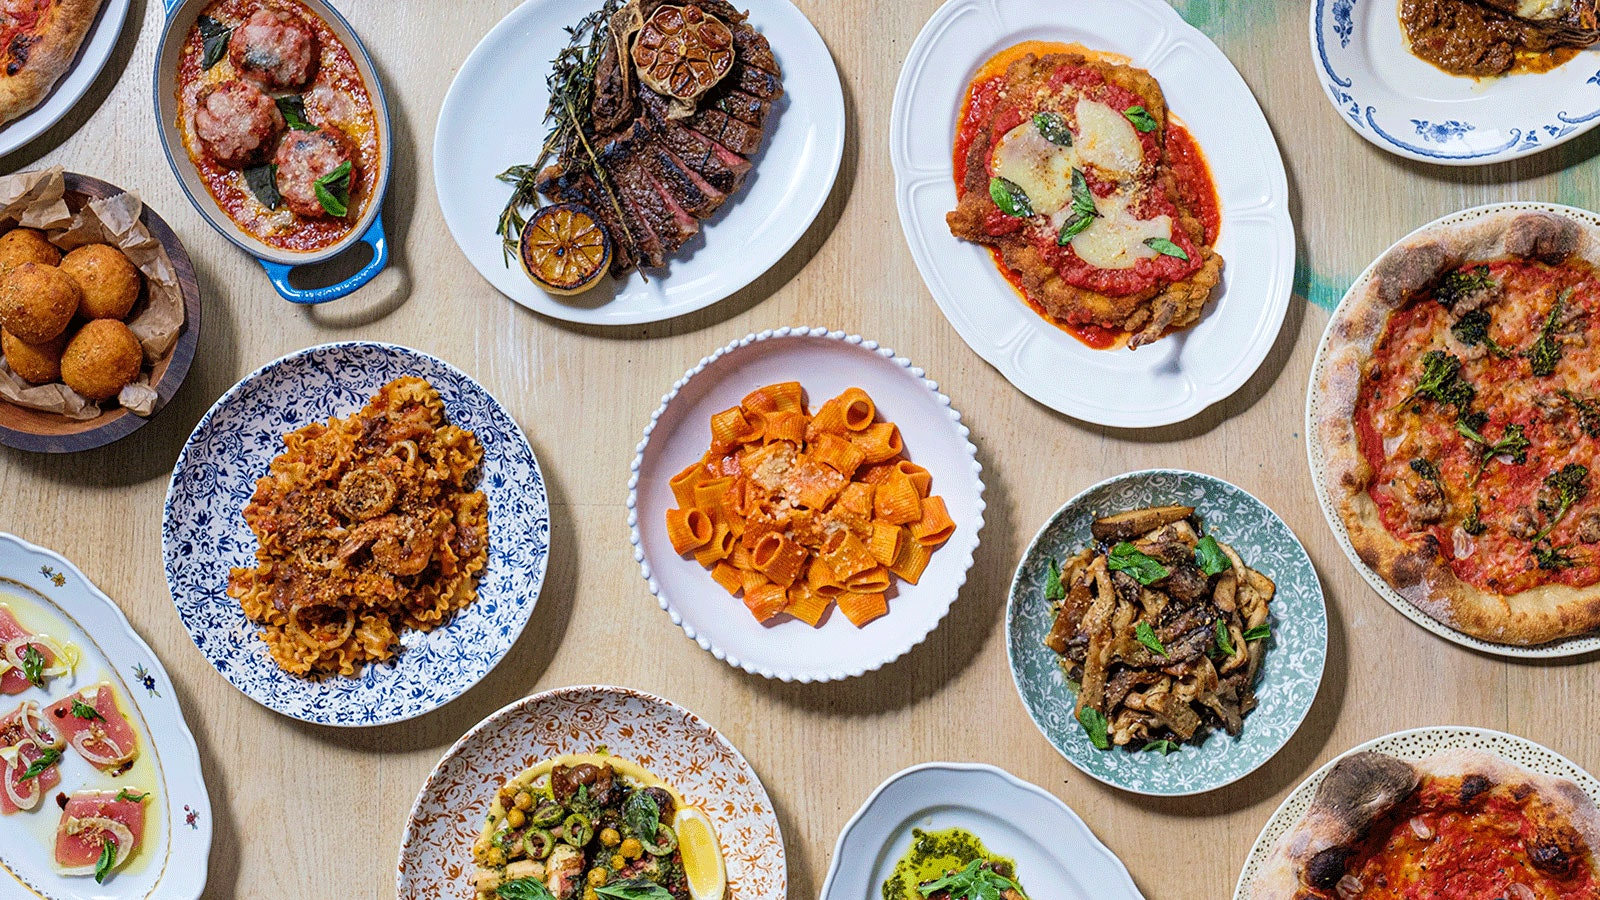 An overhead view of a spread of dishes at Alla Vita